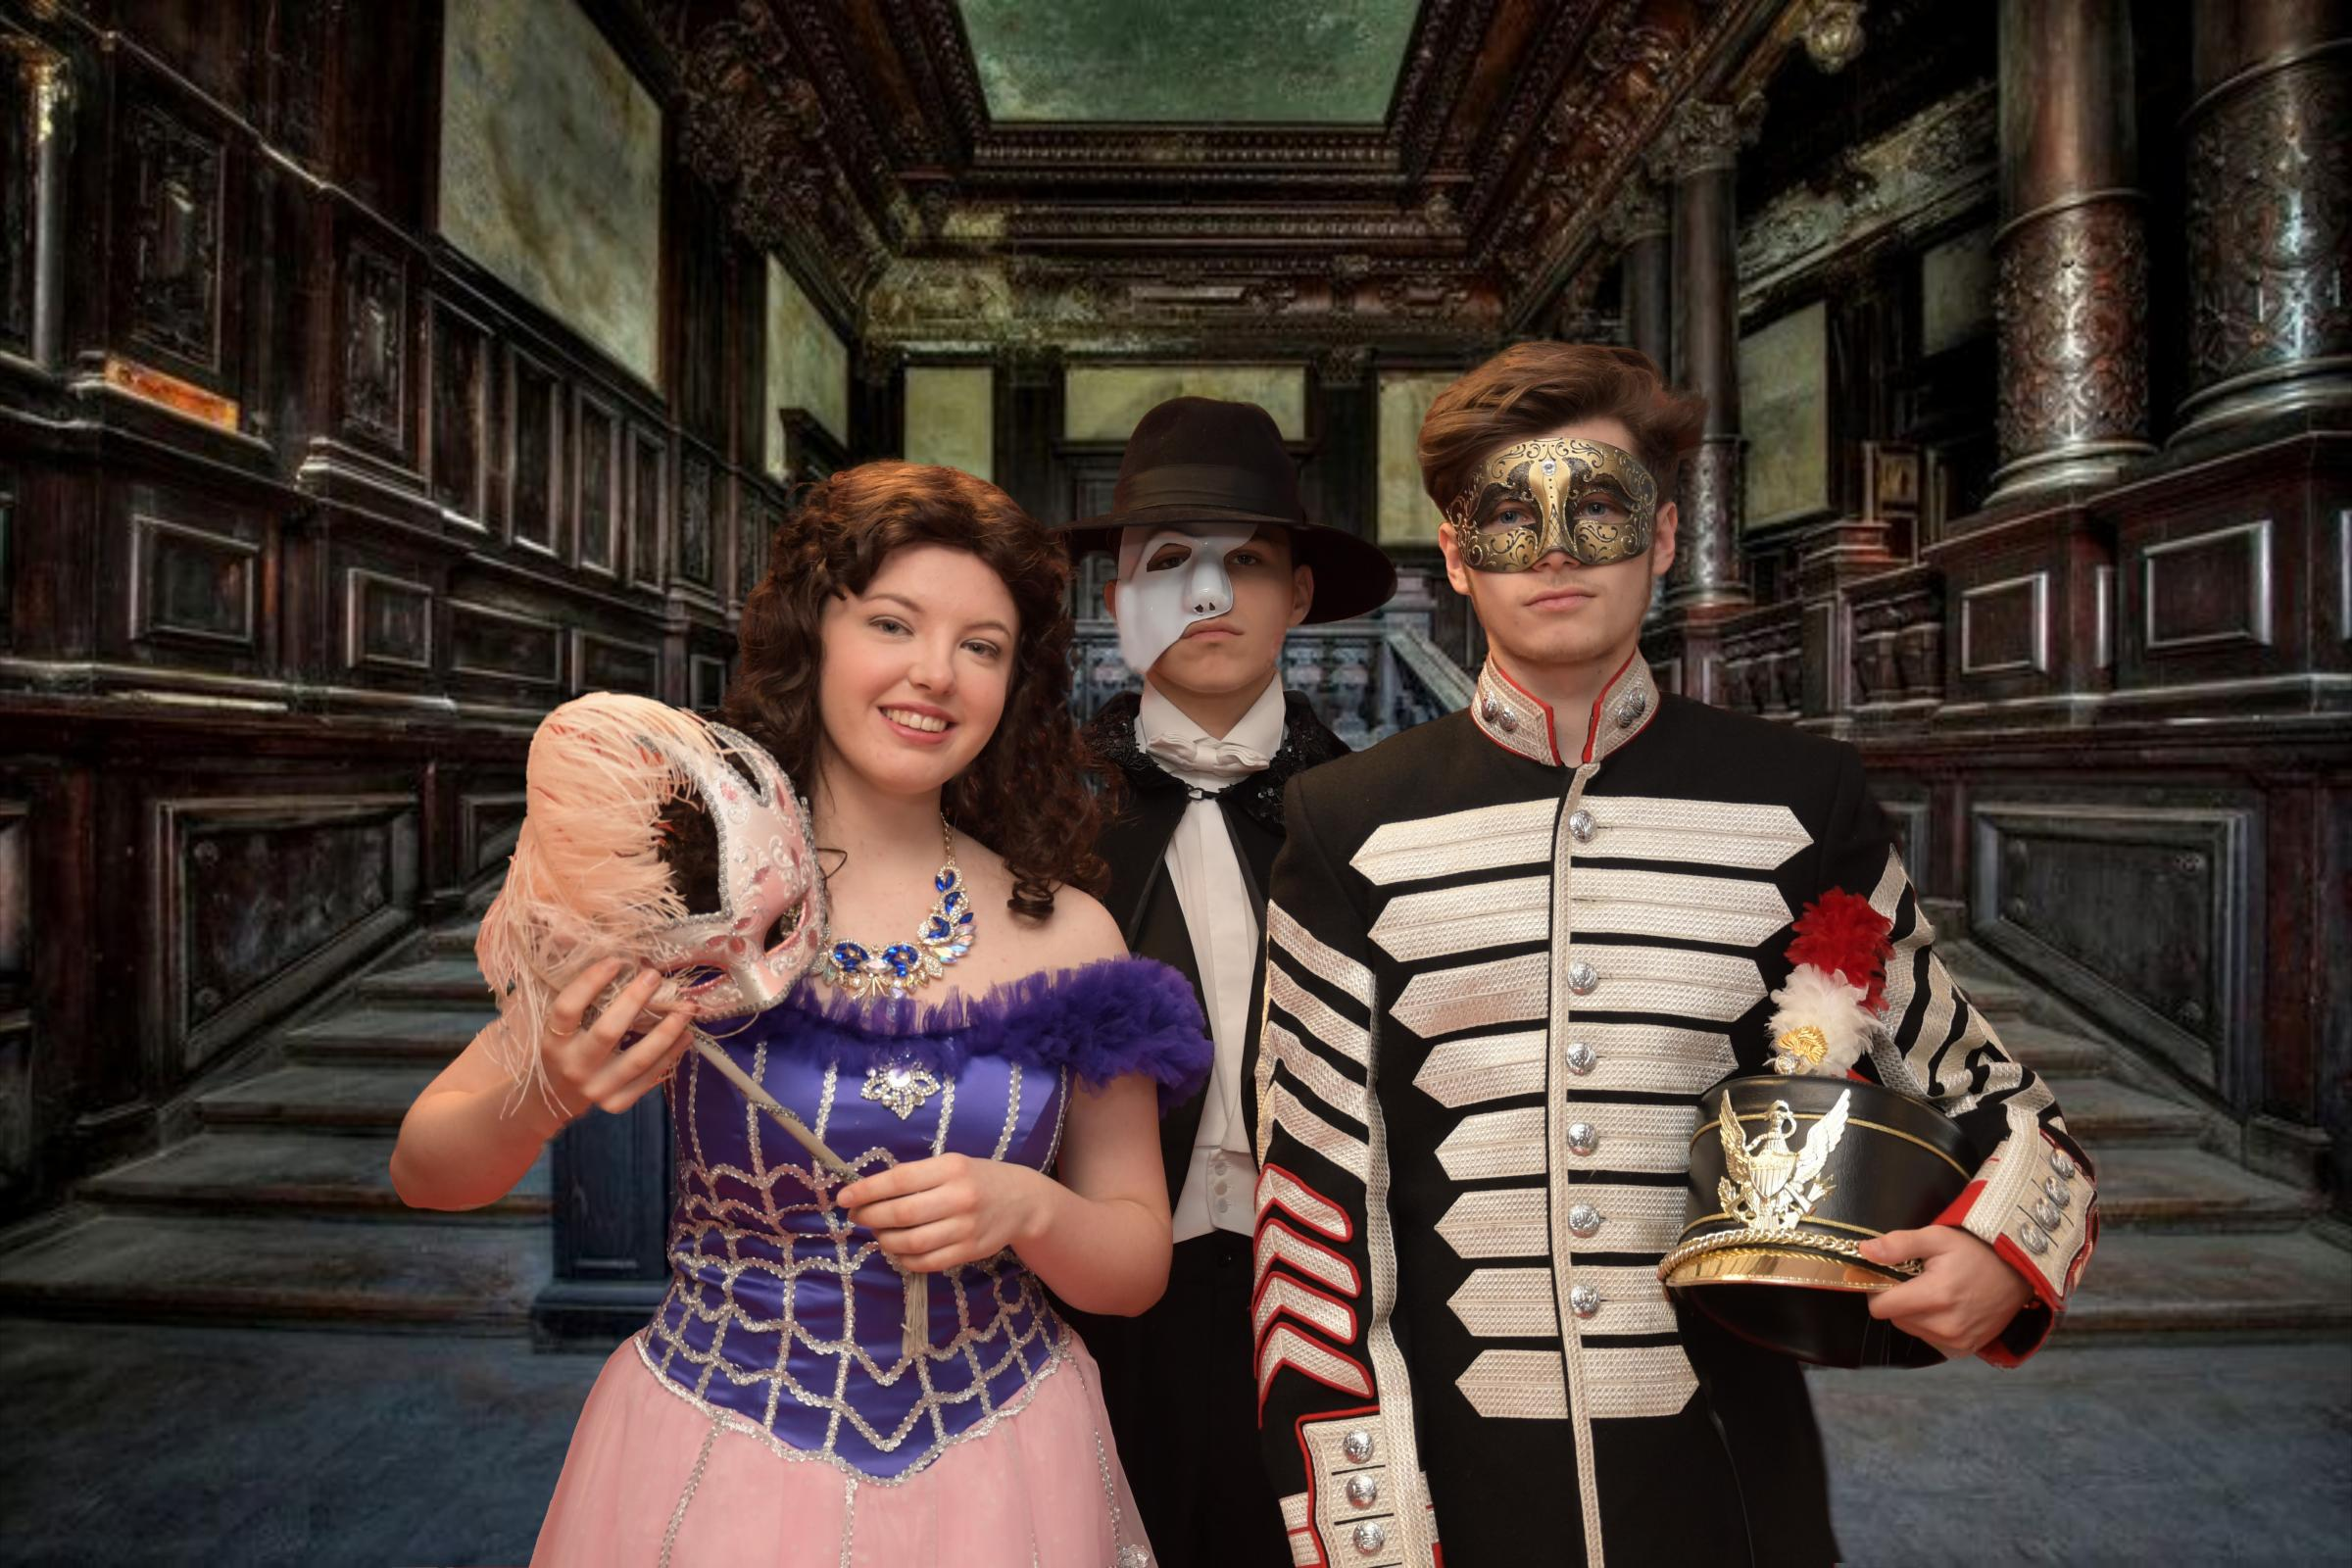 L-r - Alex Cooper as Christine Daaé, Oliver Keeling as Raoul, and Alex Cook as the Phantom.